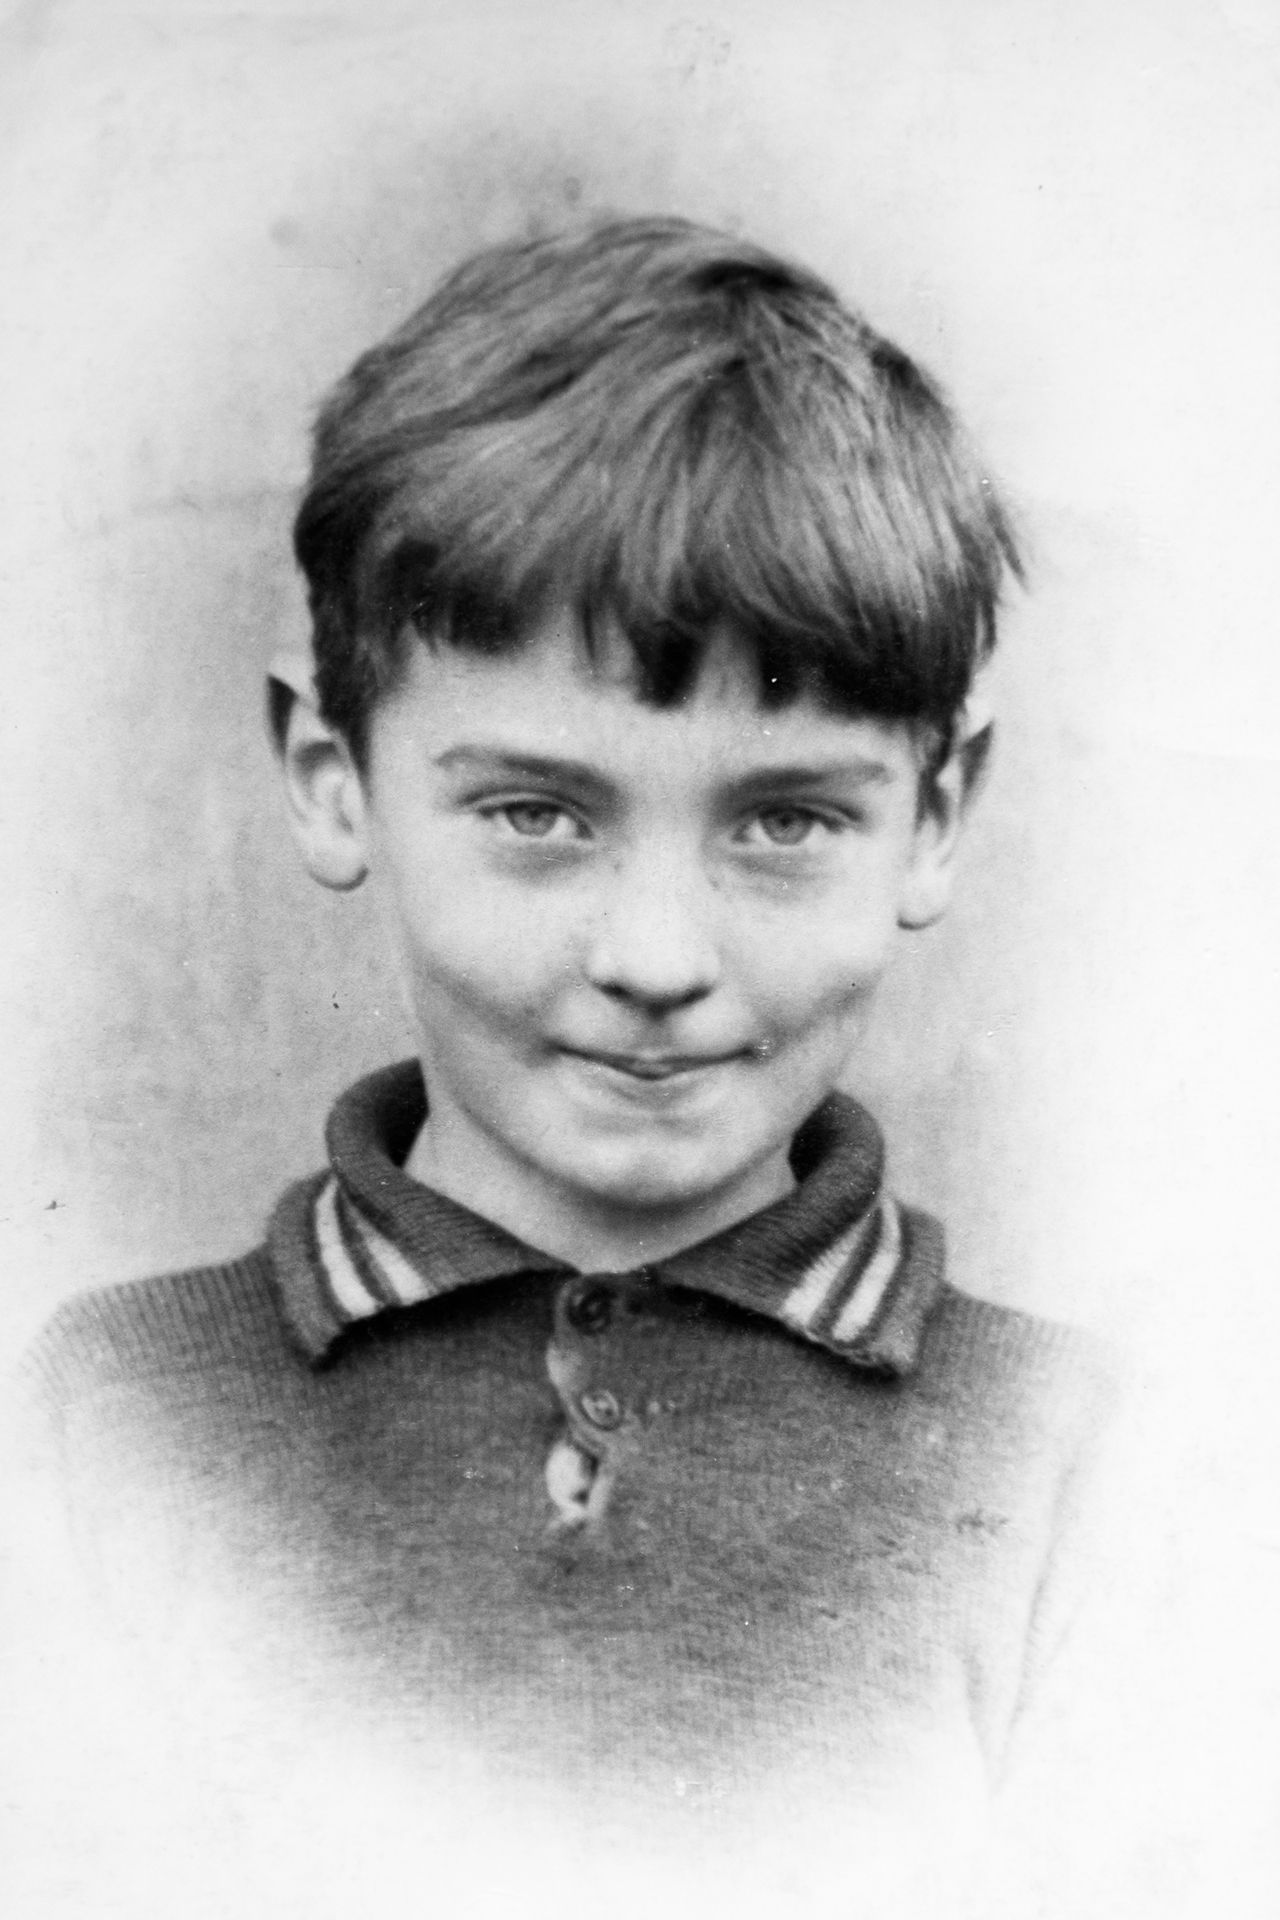 A young Ted, age seven